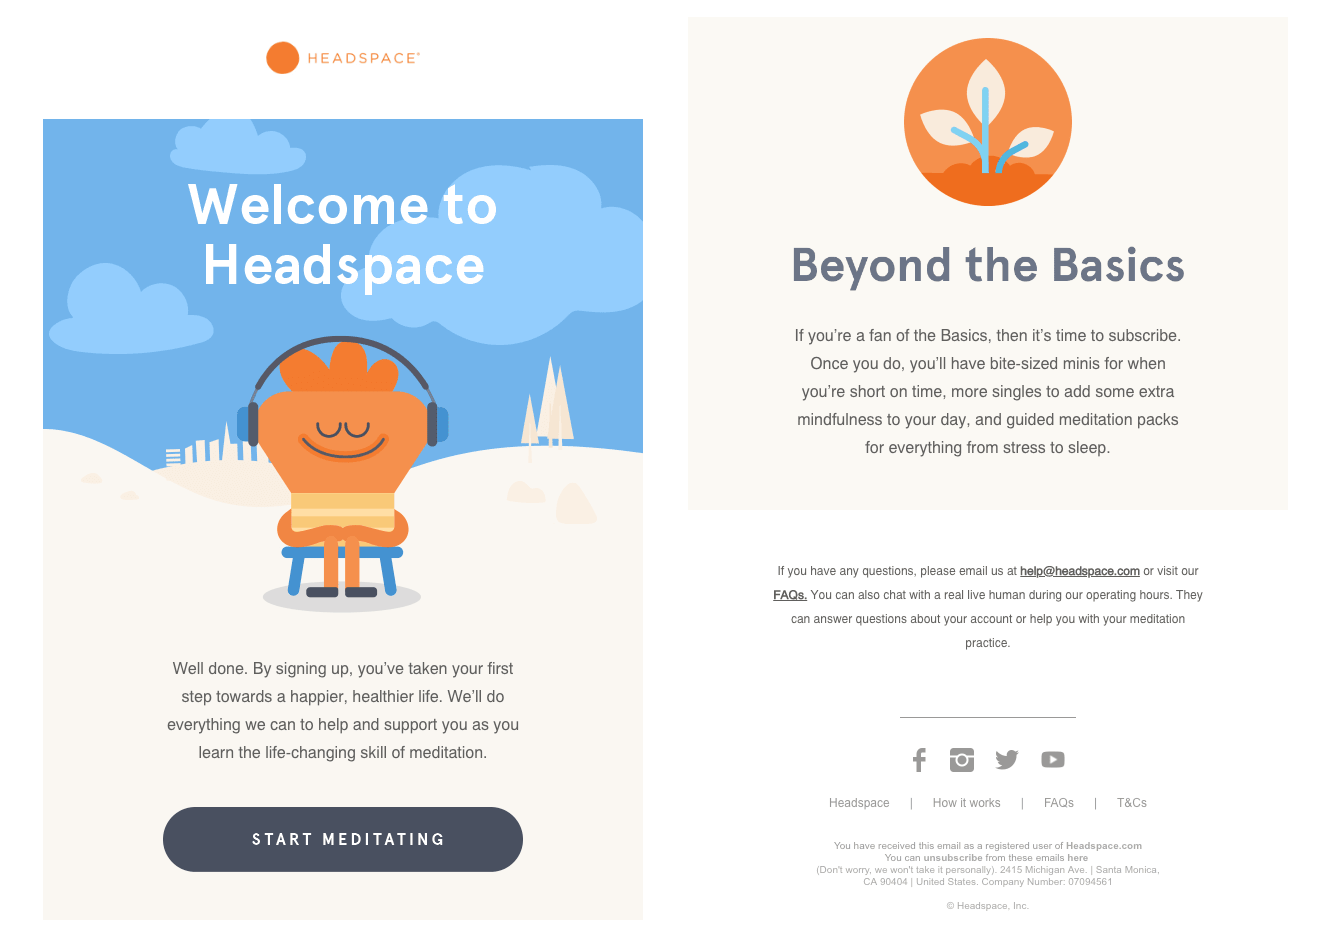 HeadSpace's emails are simple with cool graphics, simple reminders, promotions, and classy cartoons